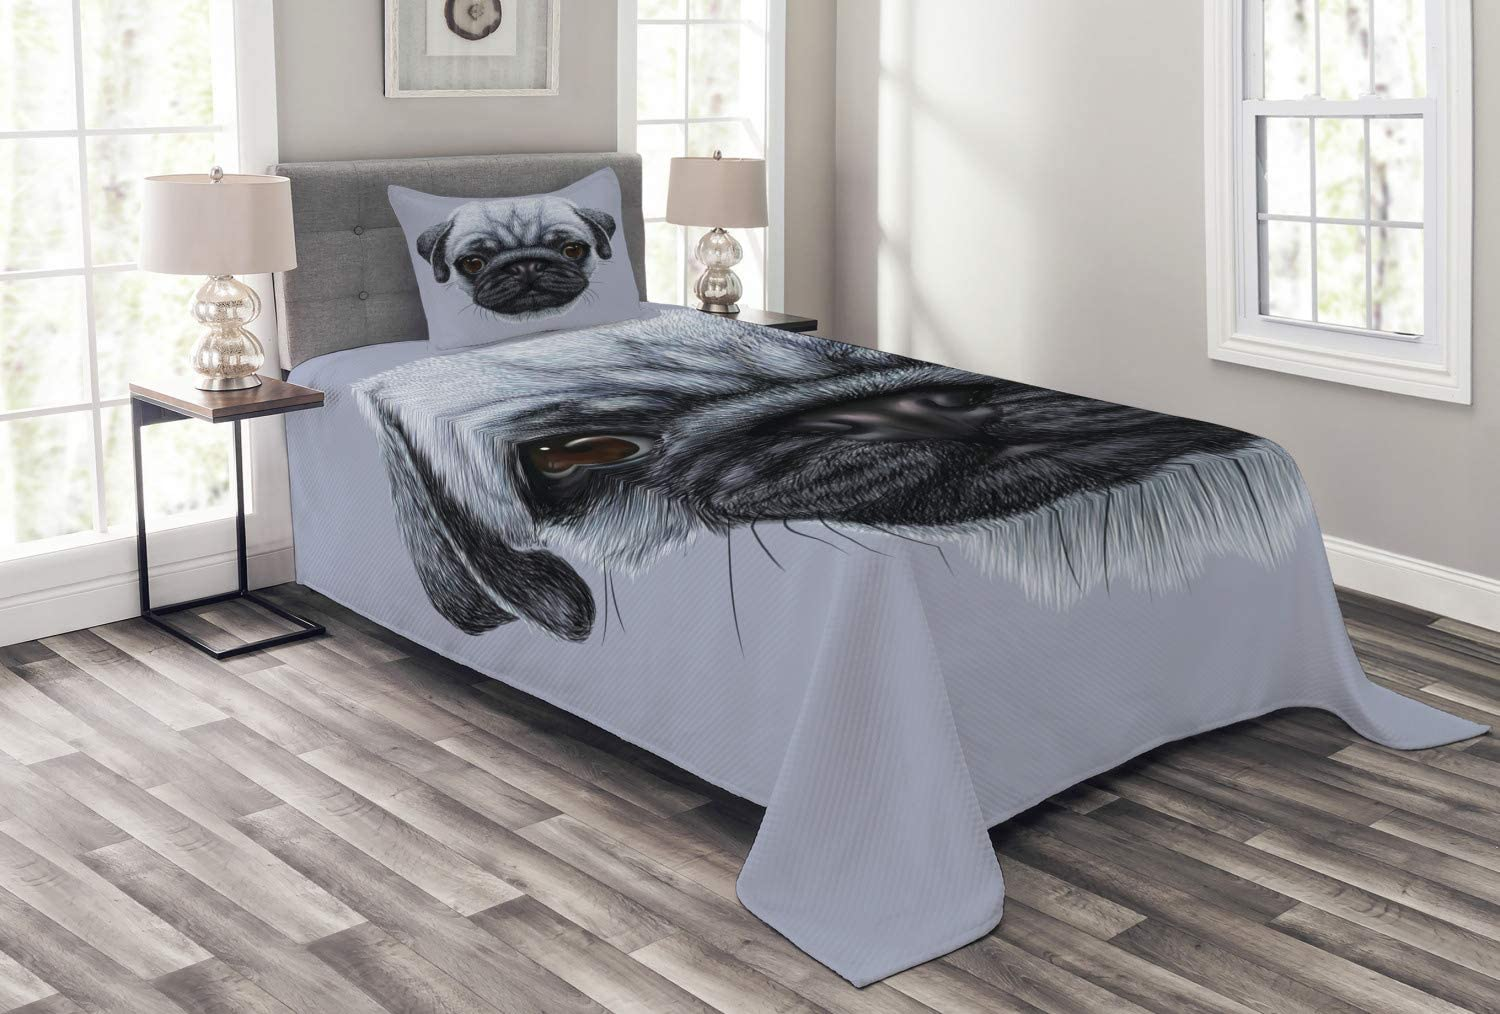 Ambesonne Pug Bedspread, Realistic Style Detailed Young Dog with Giant Eyes Pure Breed Pug Blue Backdrop, Decorative Quilted 2 Piece Coverlet Set with Pillow Sham, Twin Size, Slate Blue